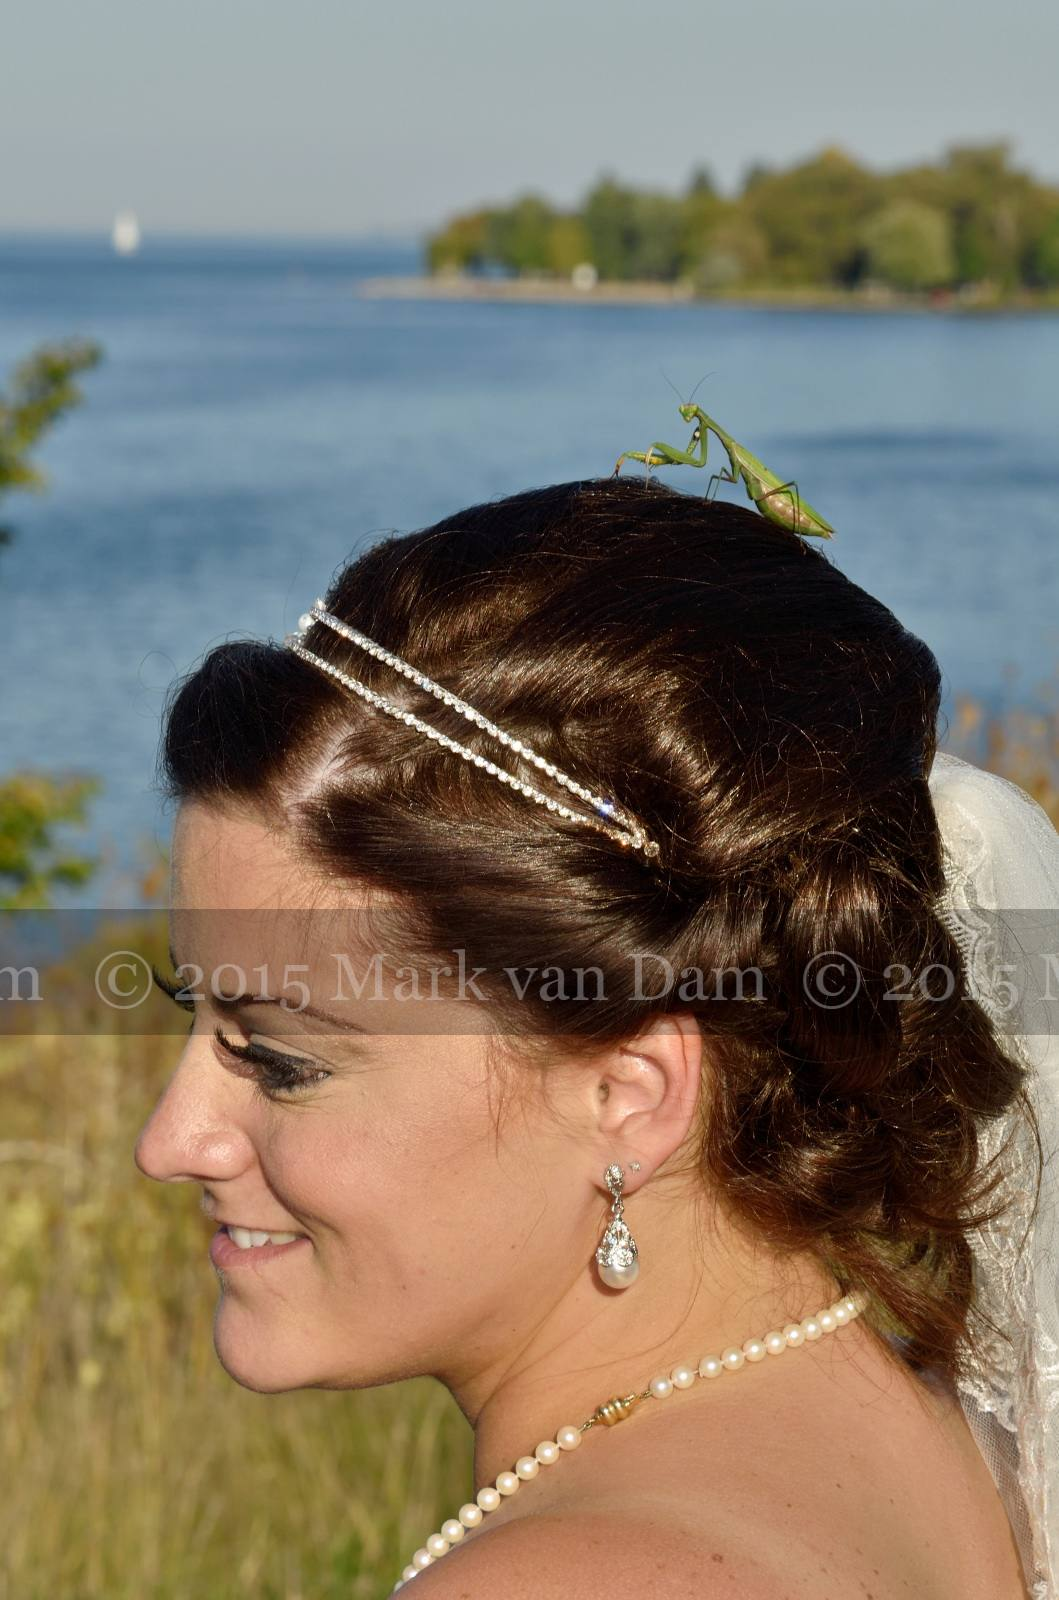 praying mantis lands on bride's head